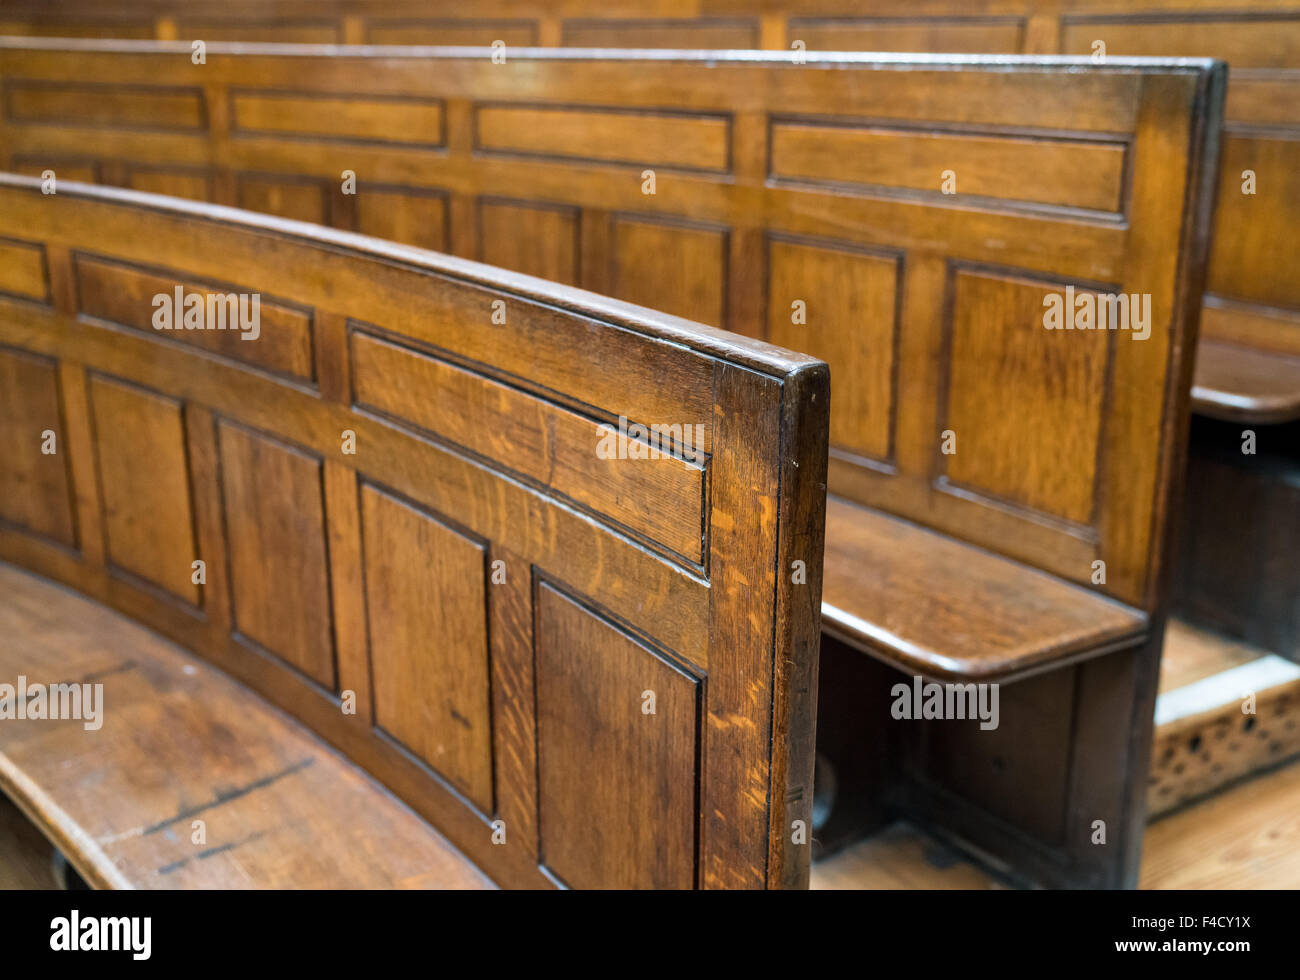 Old wooden courtroom seating in St George's hall, Liverpool. - Stock Image